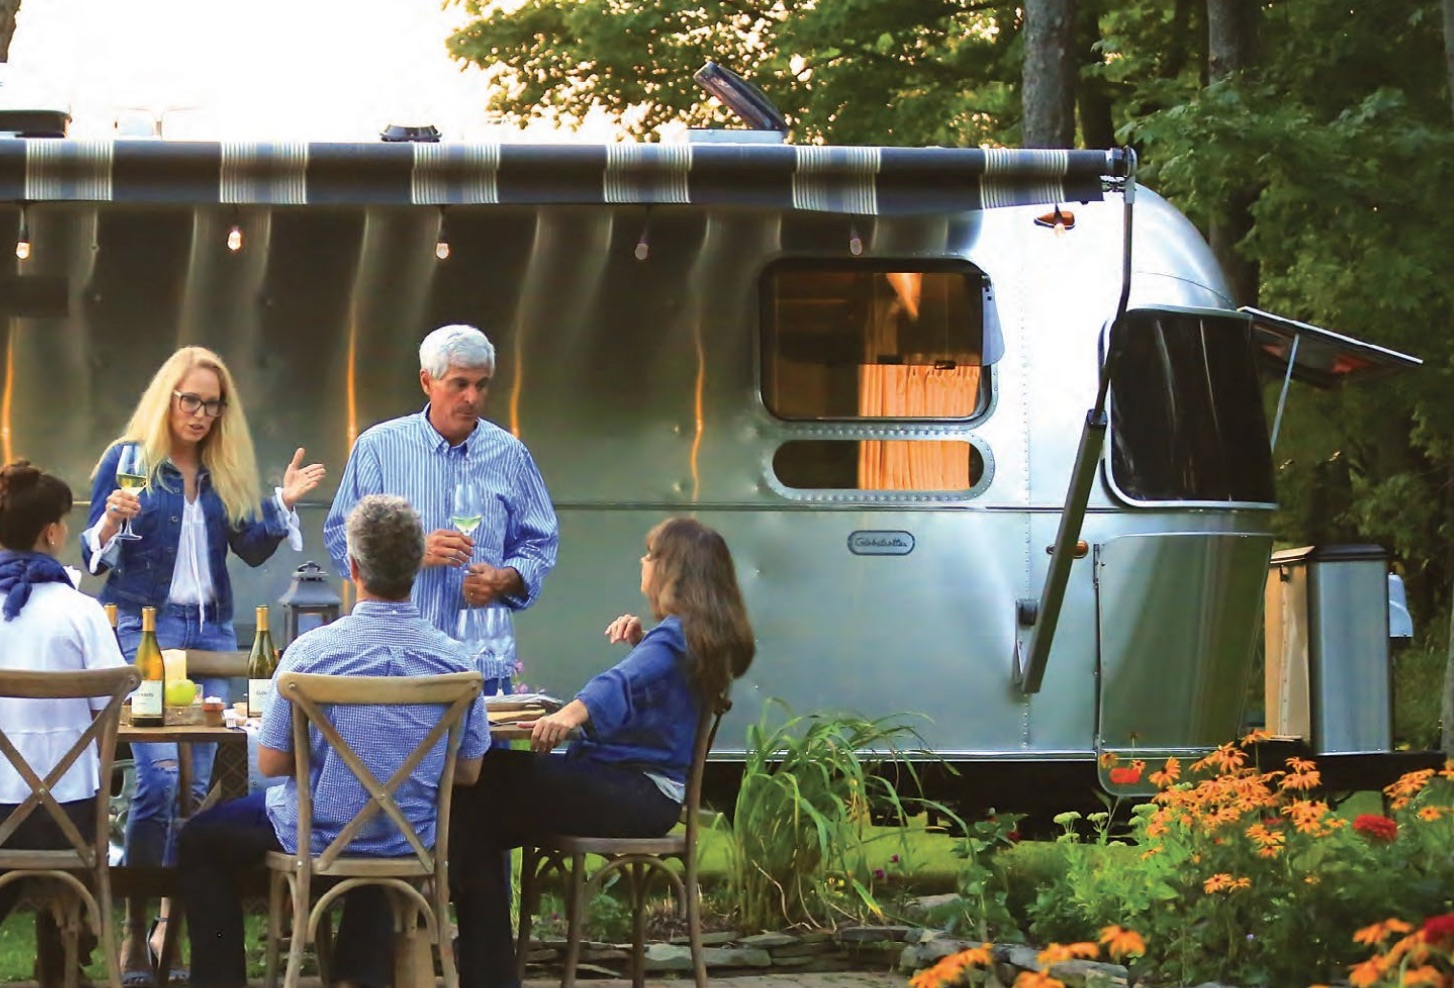 Airstream Globetrotter Review: 23' Trailer in a Twin Bedroom